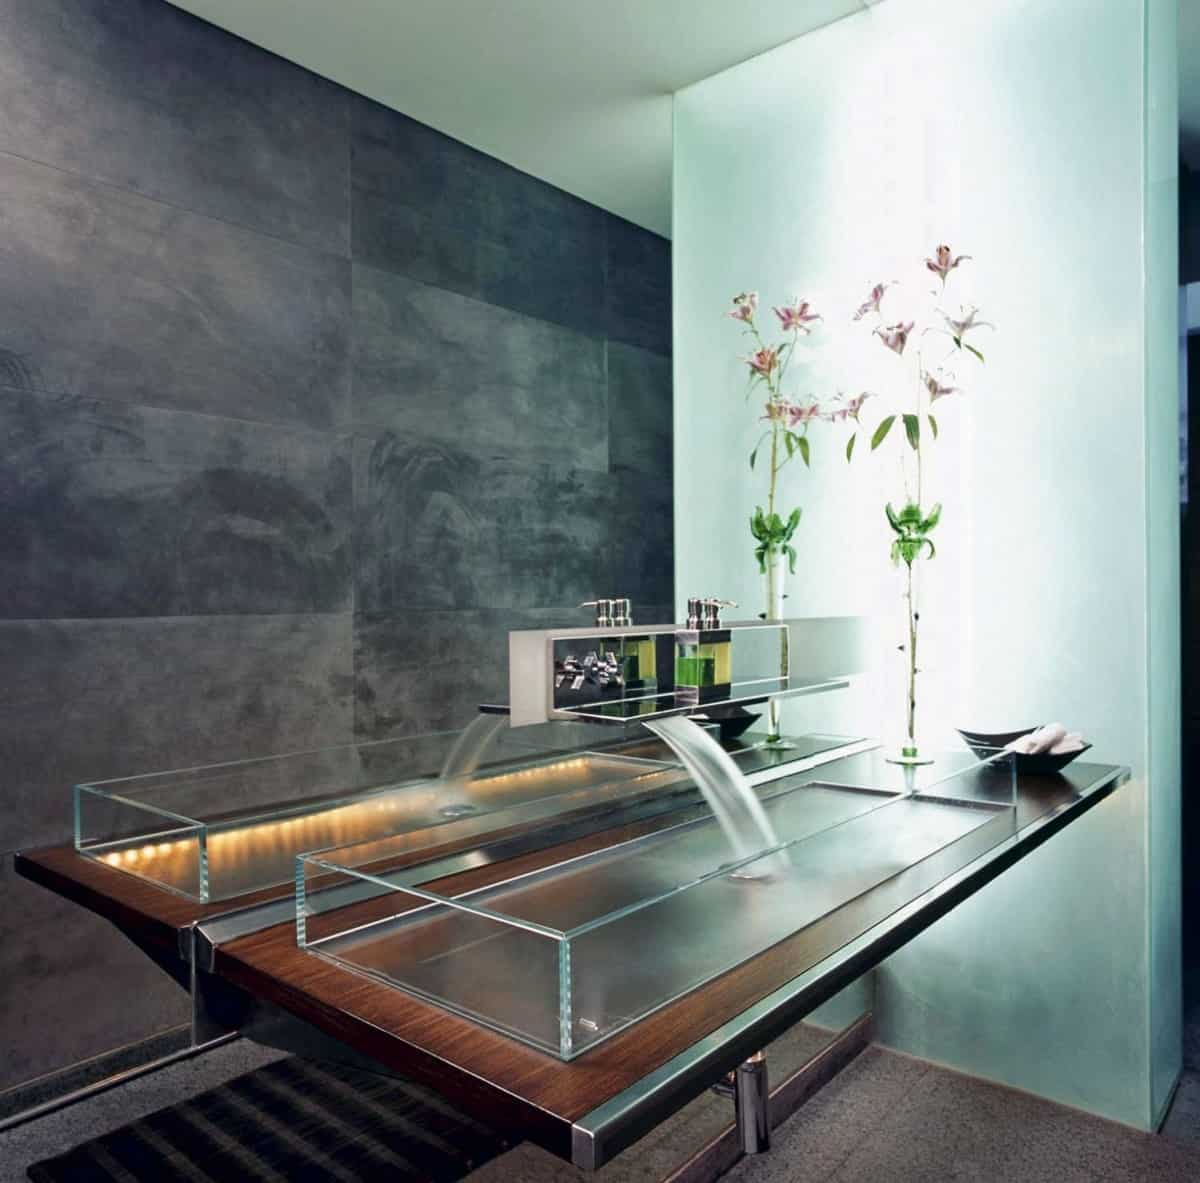 Bathroom Sink Ideas That Bring Your Space To Life - Ultra modern bathroom sinks